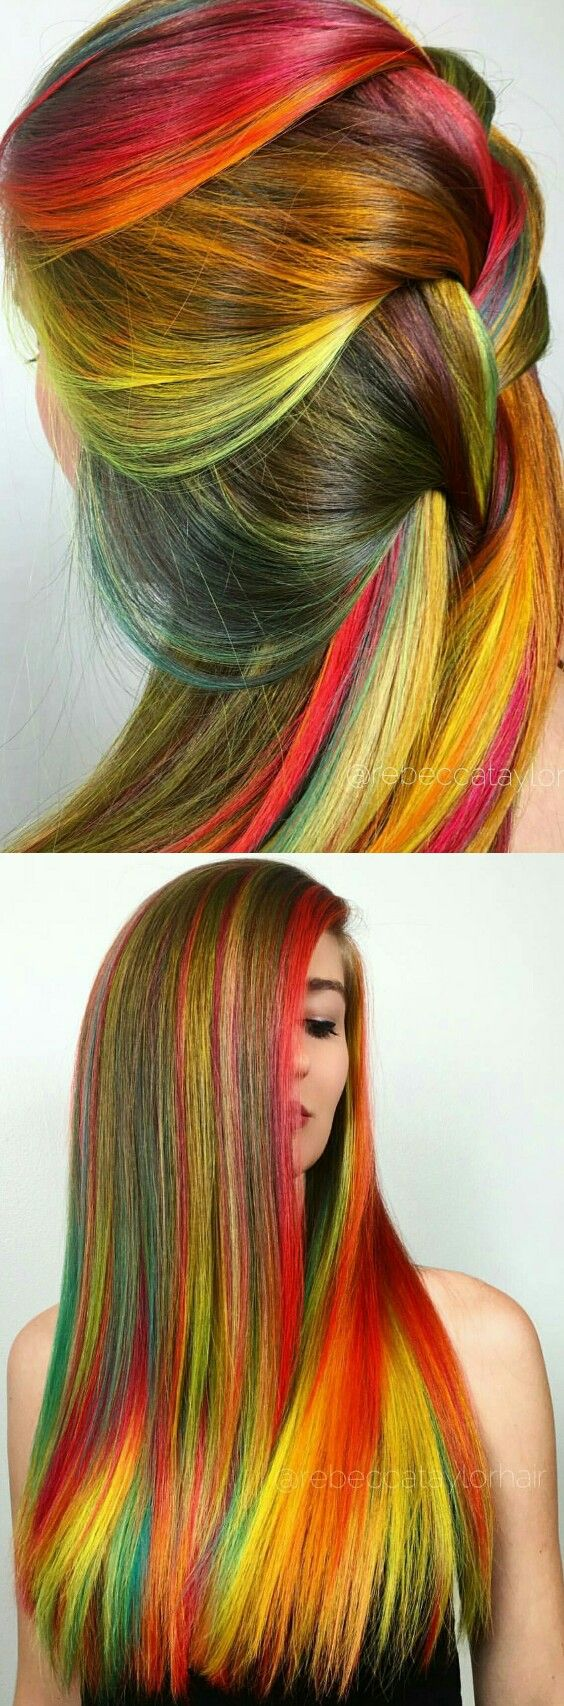 colored hair streaks